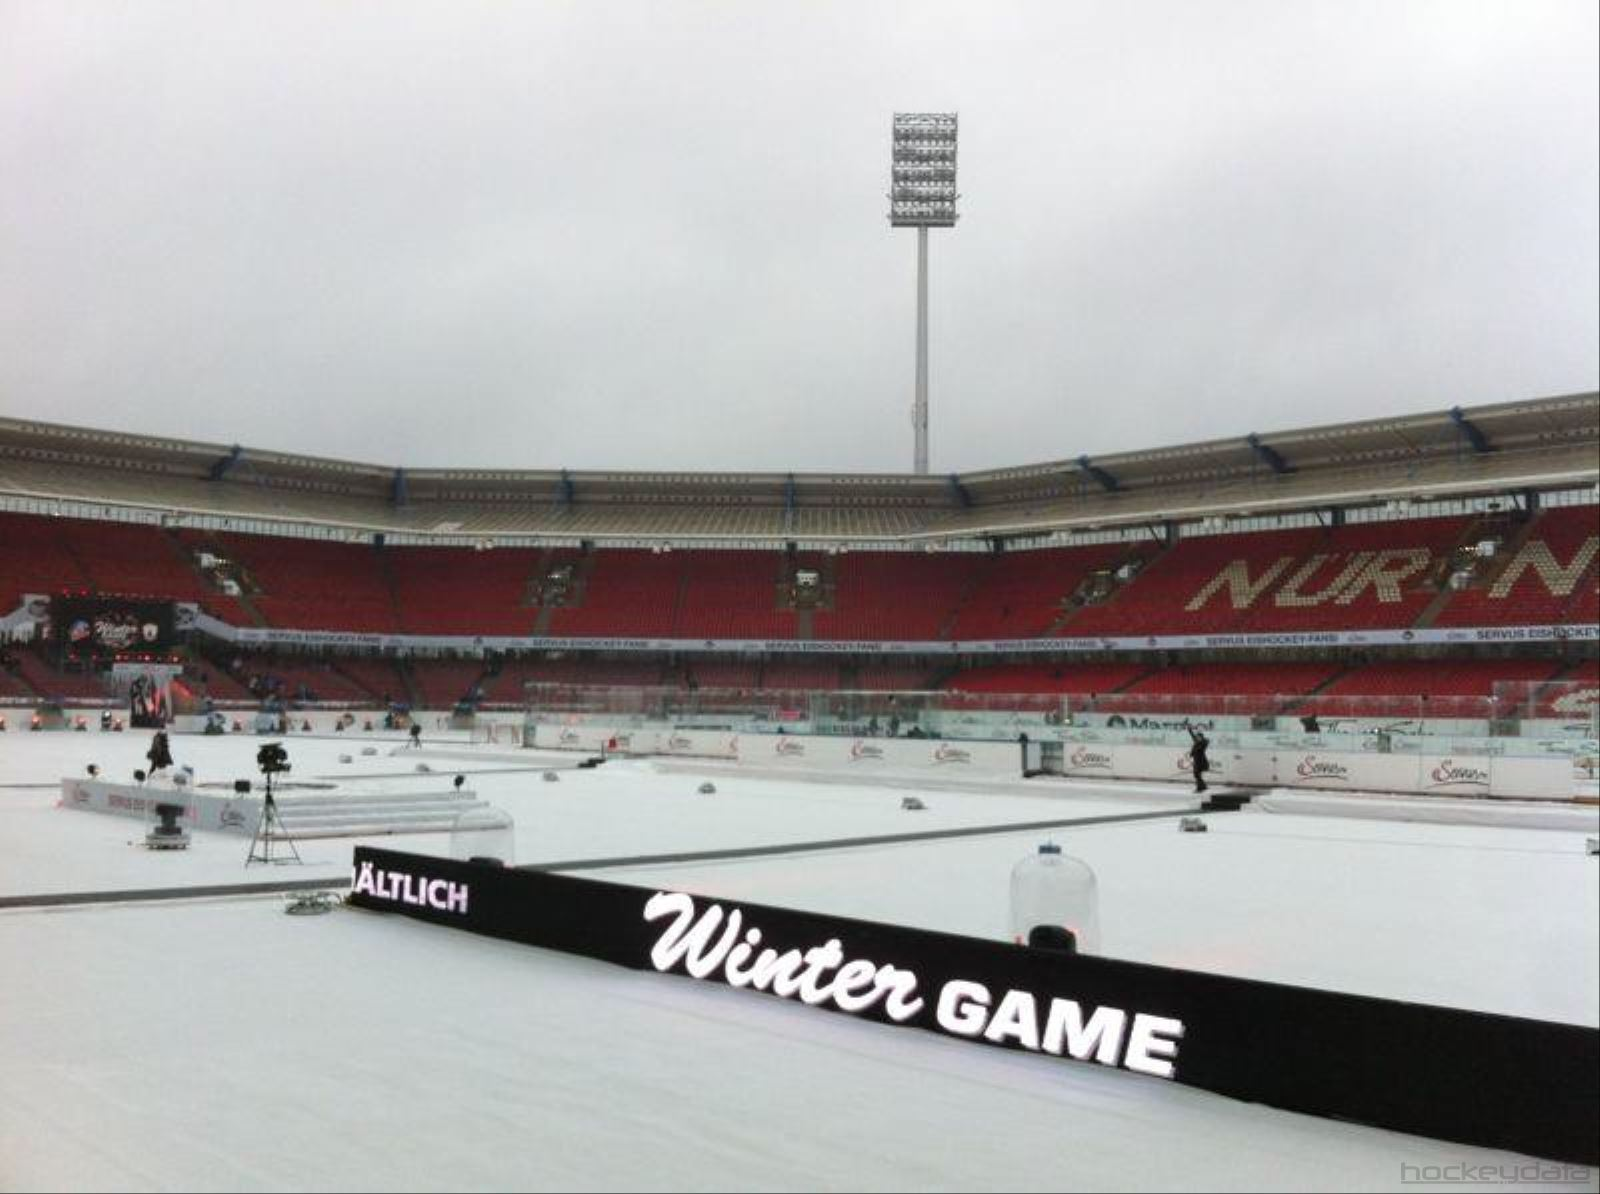 Wintergame in Nürnberg (Germany) and yes, it was pretty cold!